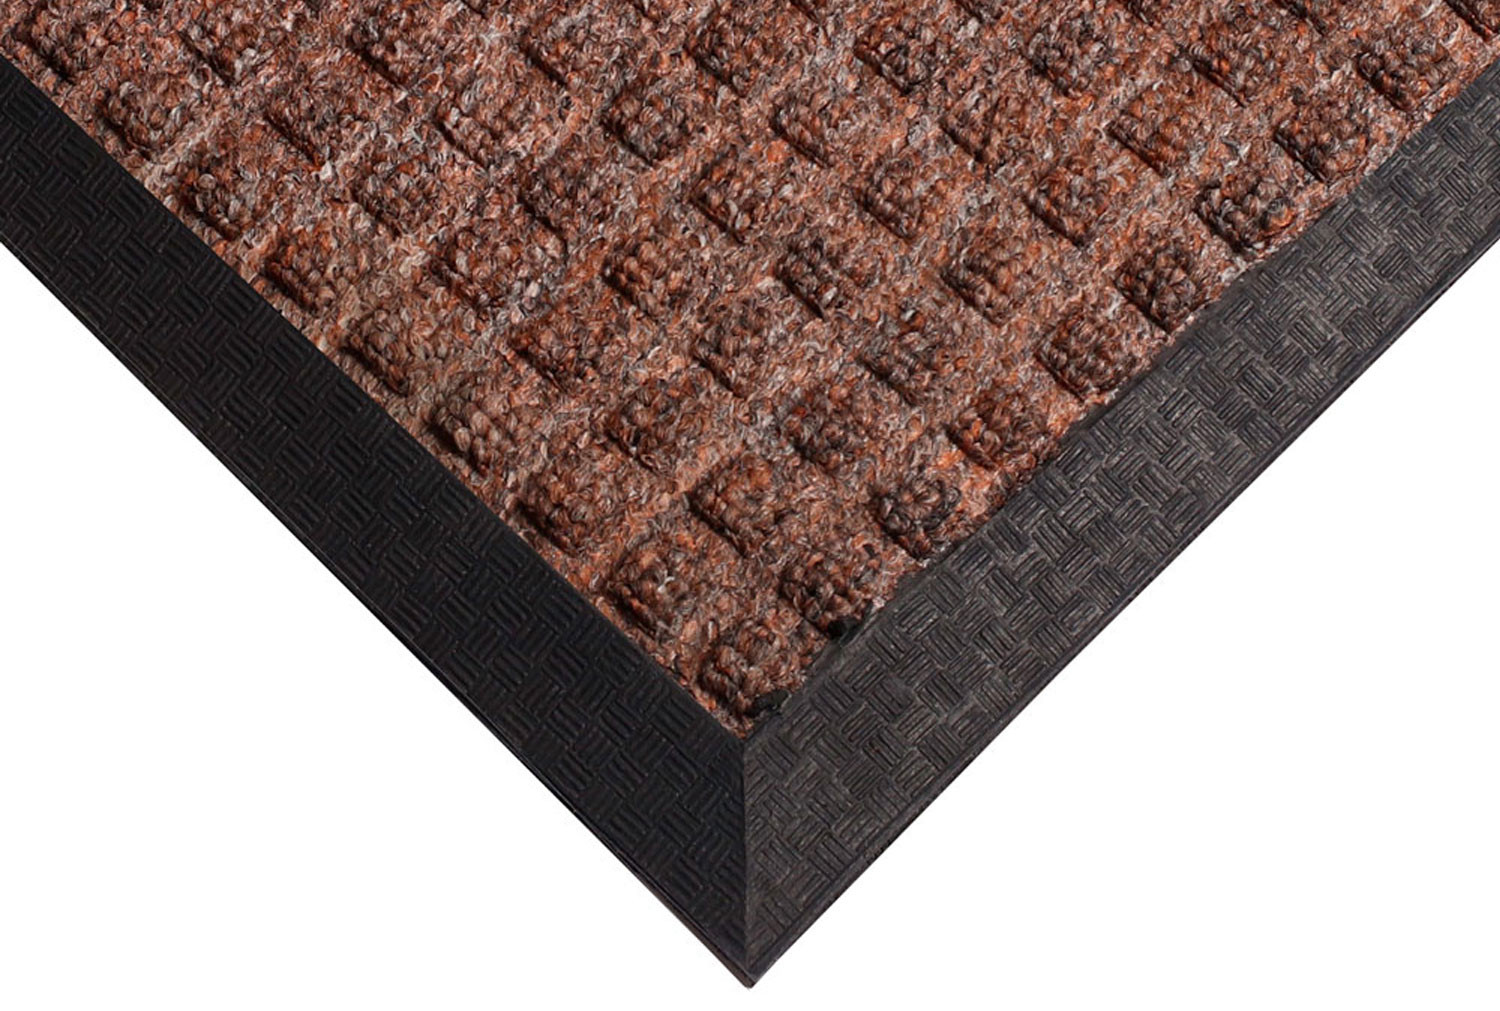 Superdry Heavy Duty Entrance Mat (Brown)